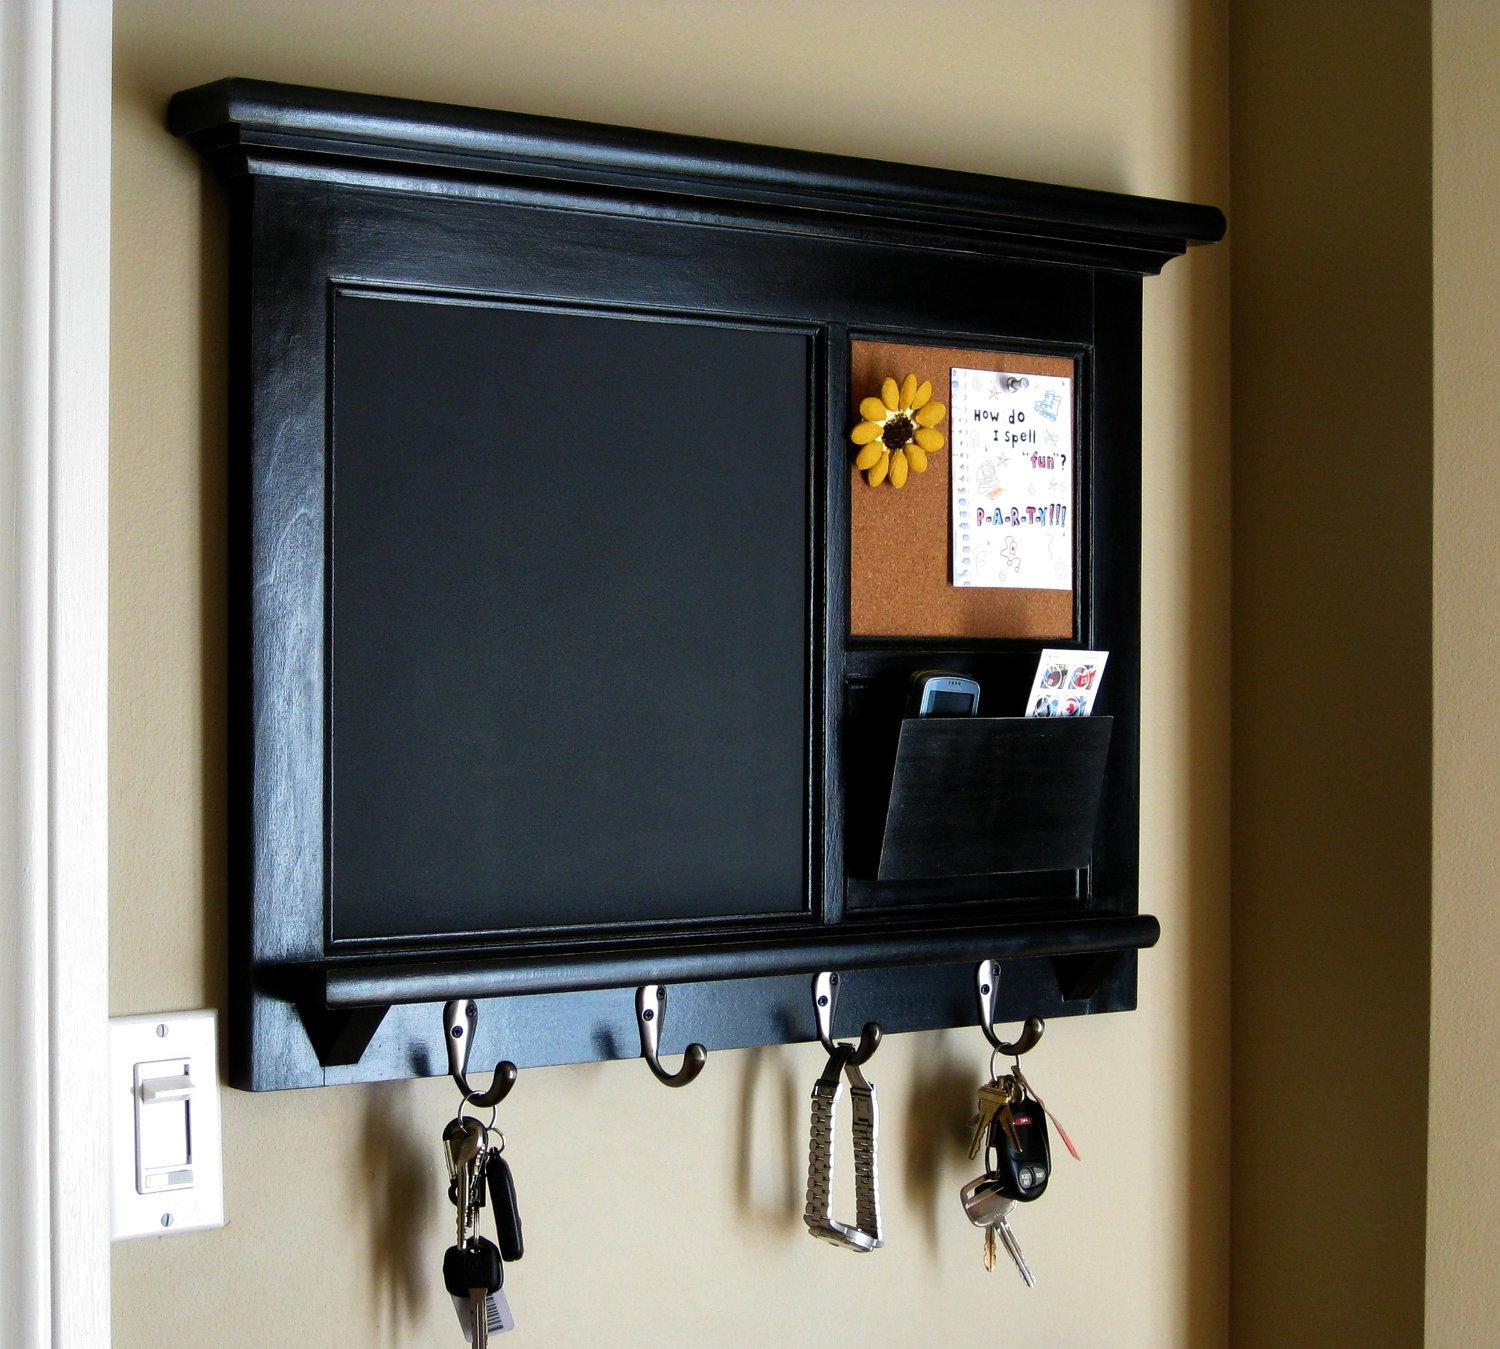 Home Decor Follow chalkboard key holder ideas